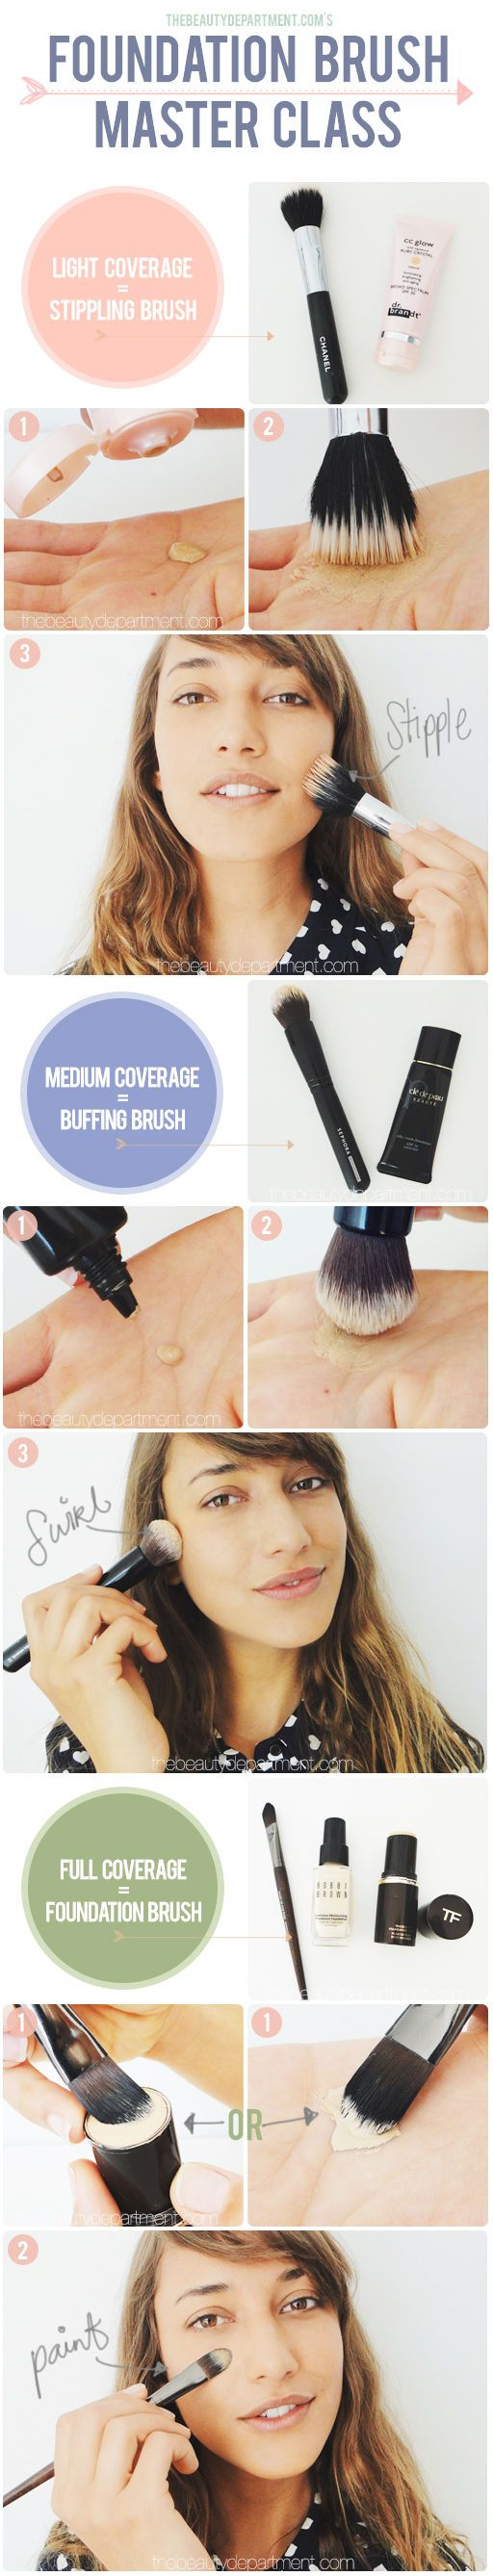 Use the specific foundation brush for the coverage you want! #contour #highlight #blush #makeup #tips #tricks #beauty #DIY #doityourself #tutorial #stepbystep #howto #practical #guide #contouring